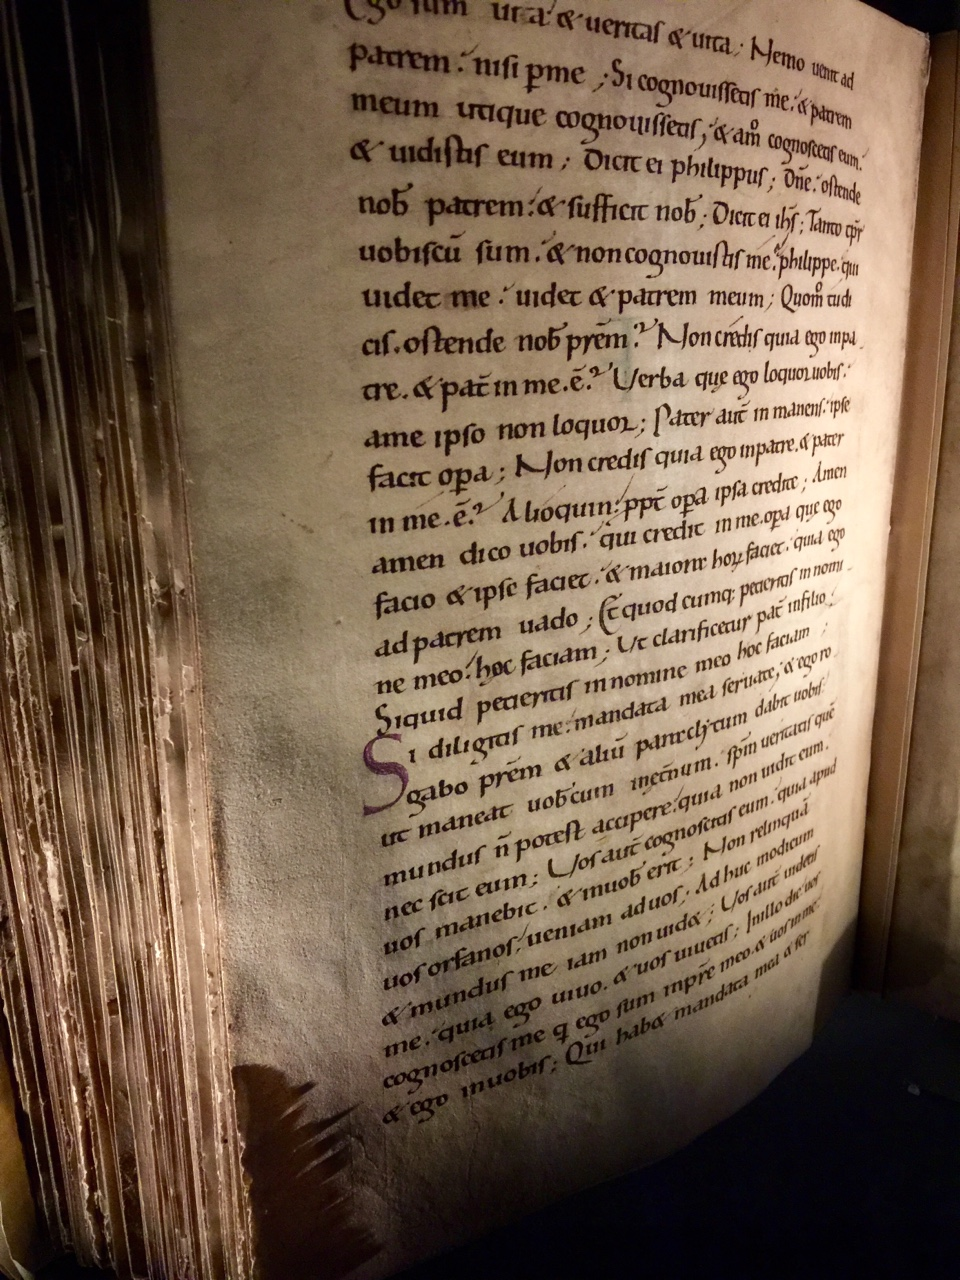 Excerpt from the York Gospels. This book is one of the oldest surviving texts in Yorkminster (the largest Gothic Cathedral in Northern Europe) and is over a thousand years old.